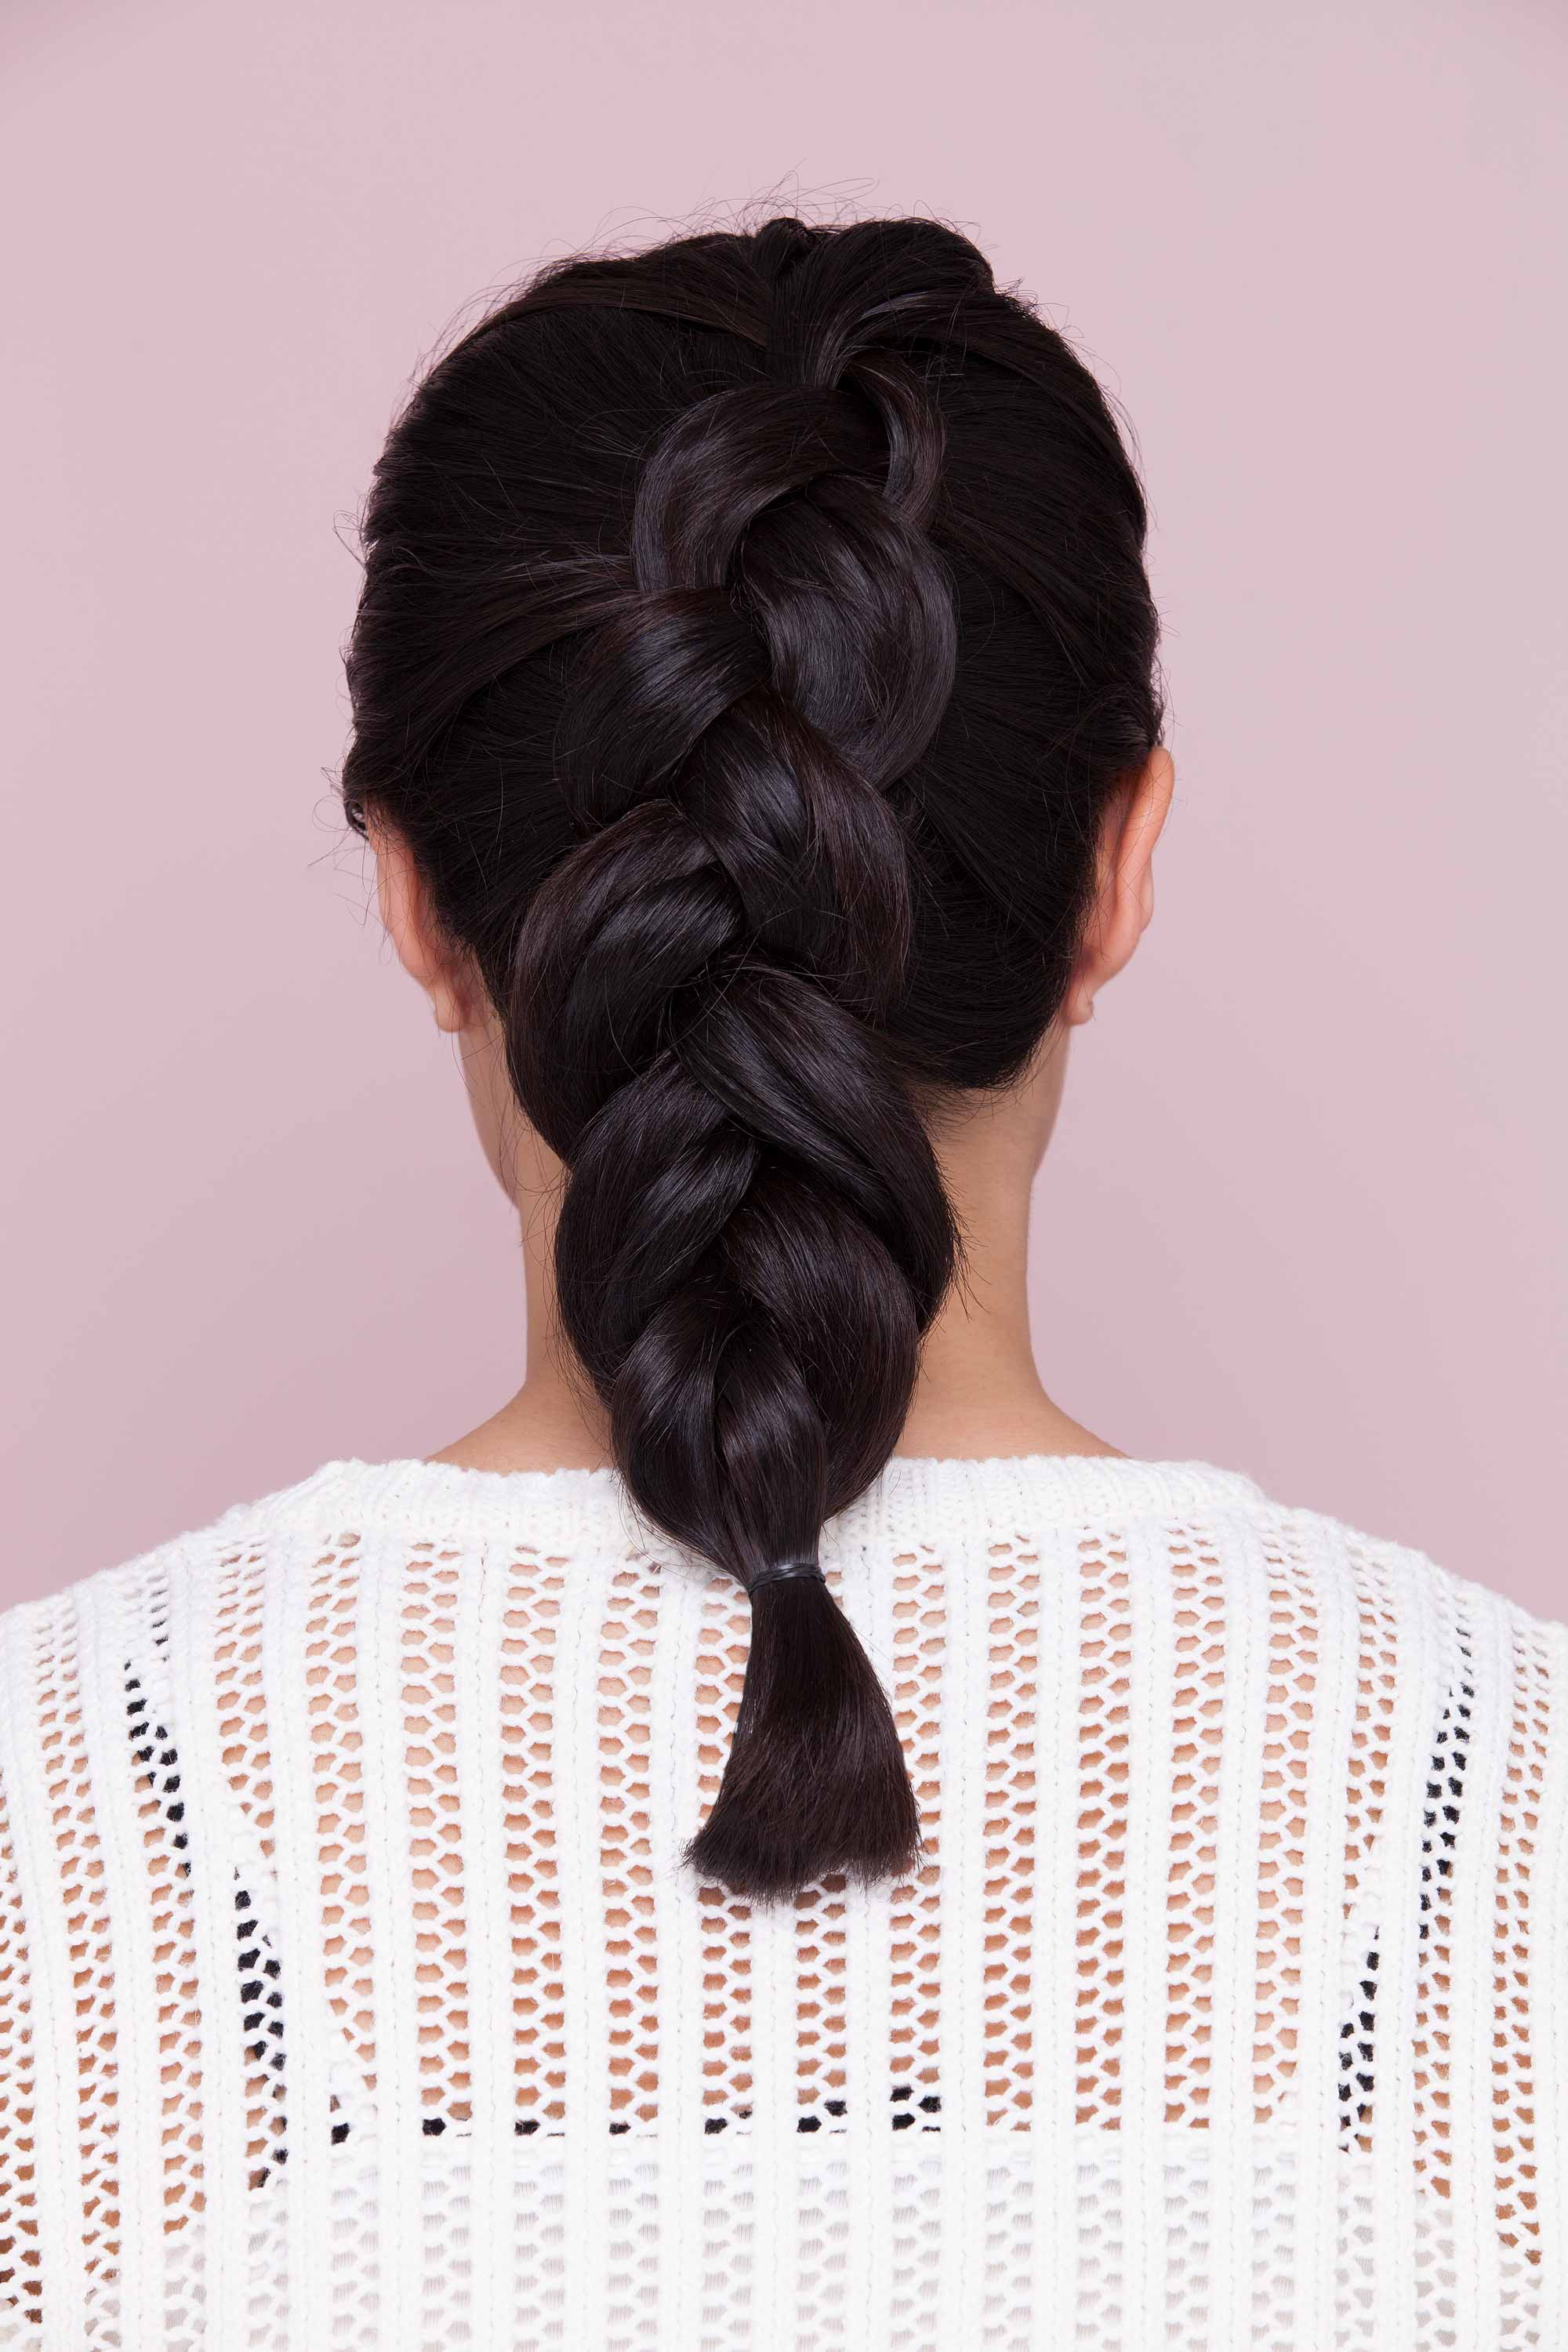 French Braid Hairstyles: 8 Casual Weekend Plaits To Keep You Super ...